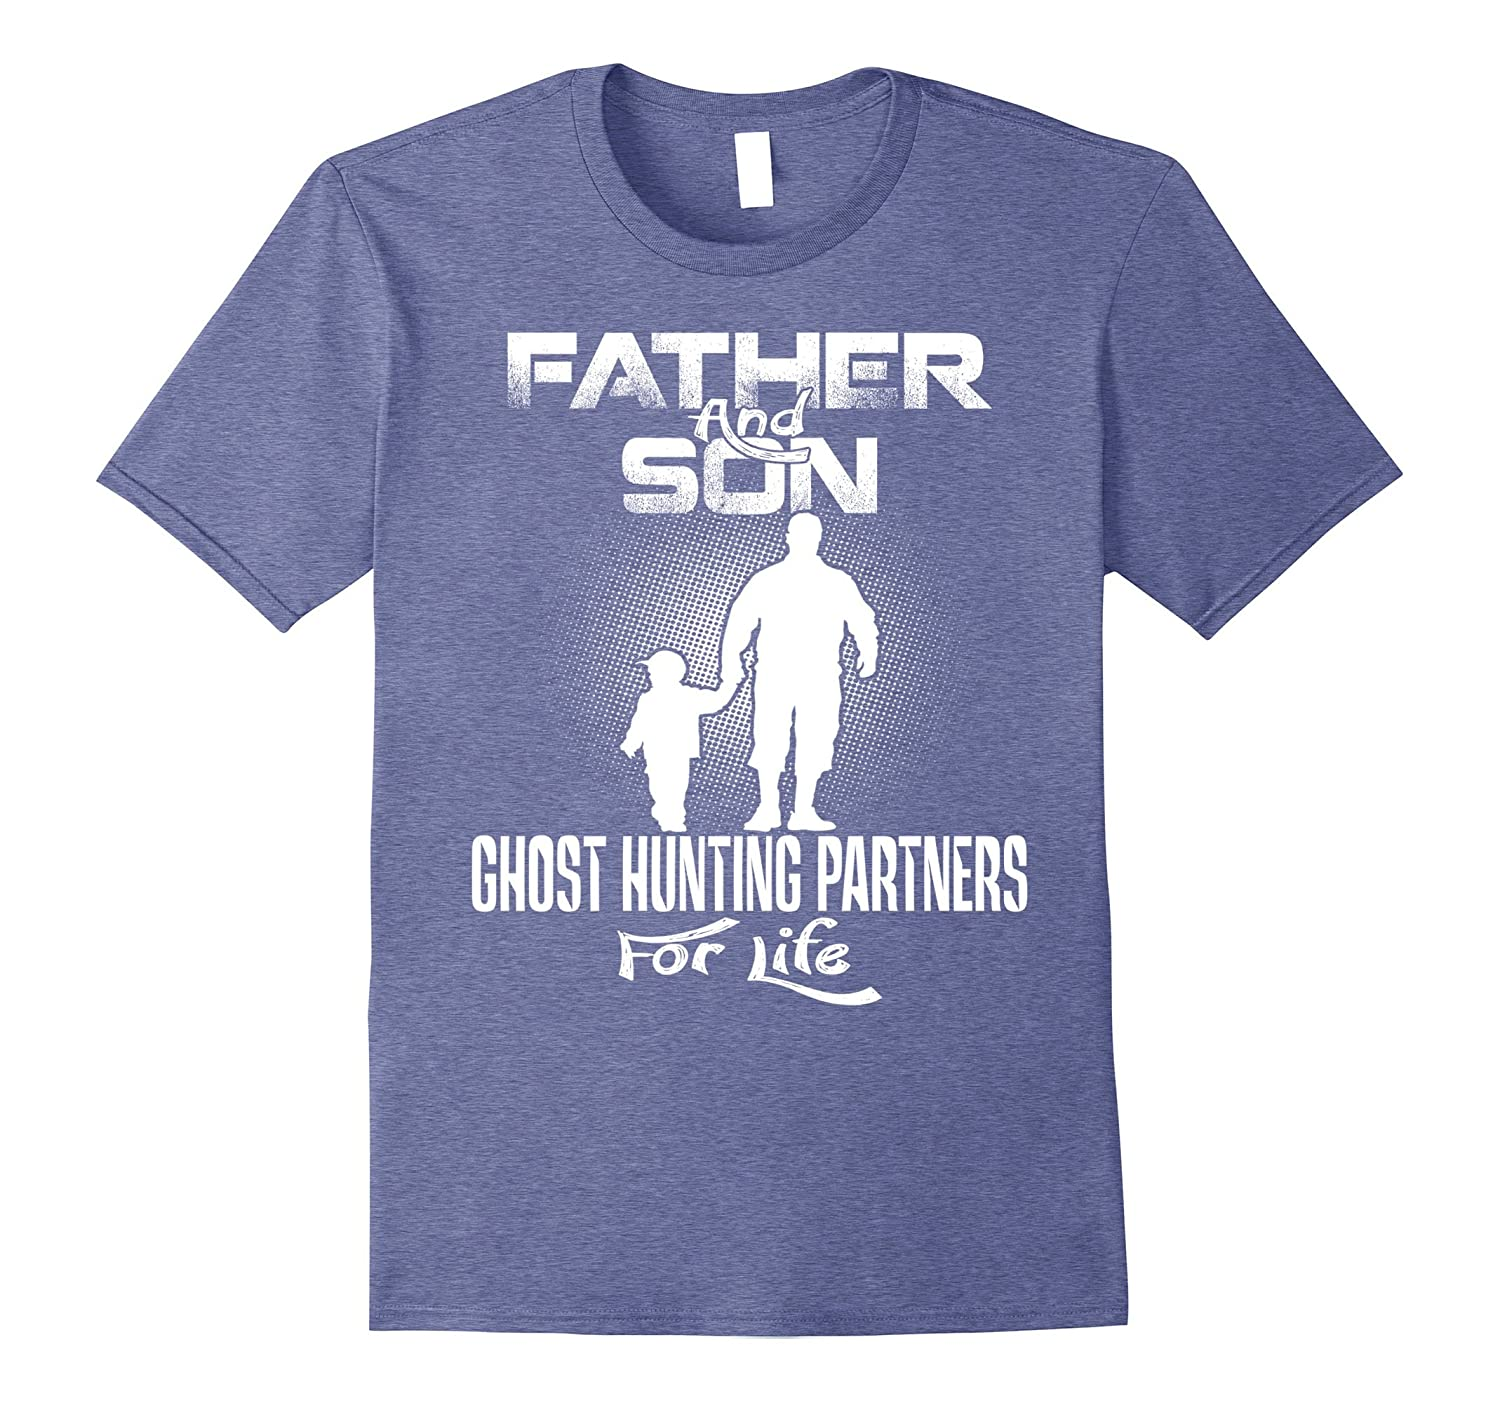 8e8ae81c Father and son Ghost hunting Partners For Life T shirts – Hntee.com